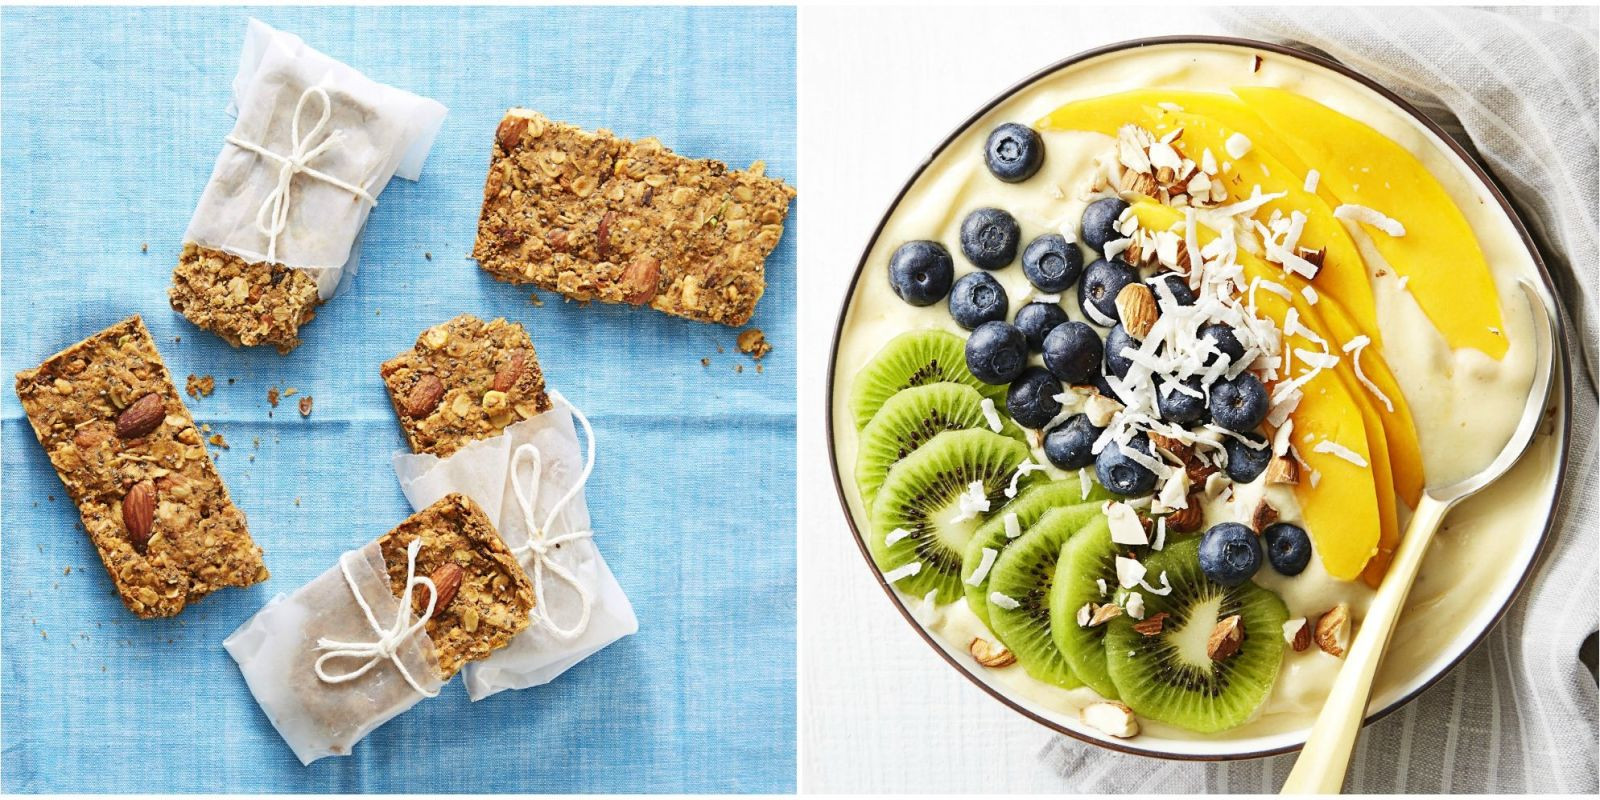 Easy Fast Healthy Breakfast  48 Easy Healthy Breakfast Ideas Recipes for Quick and